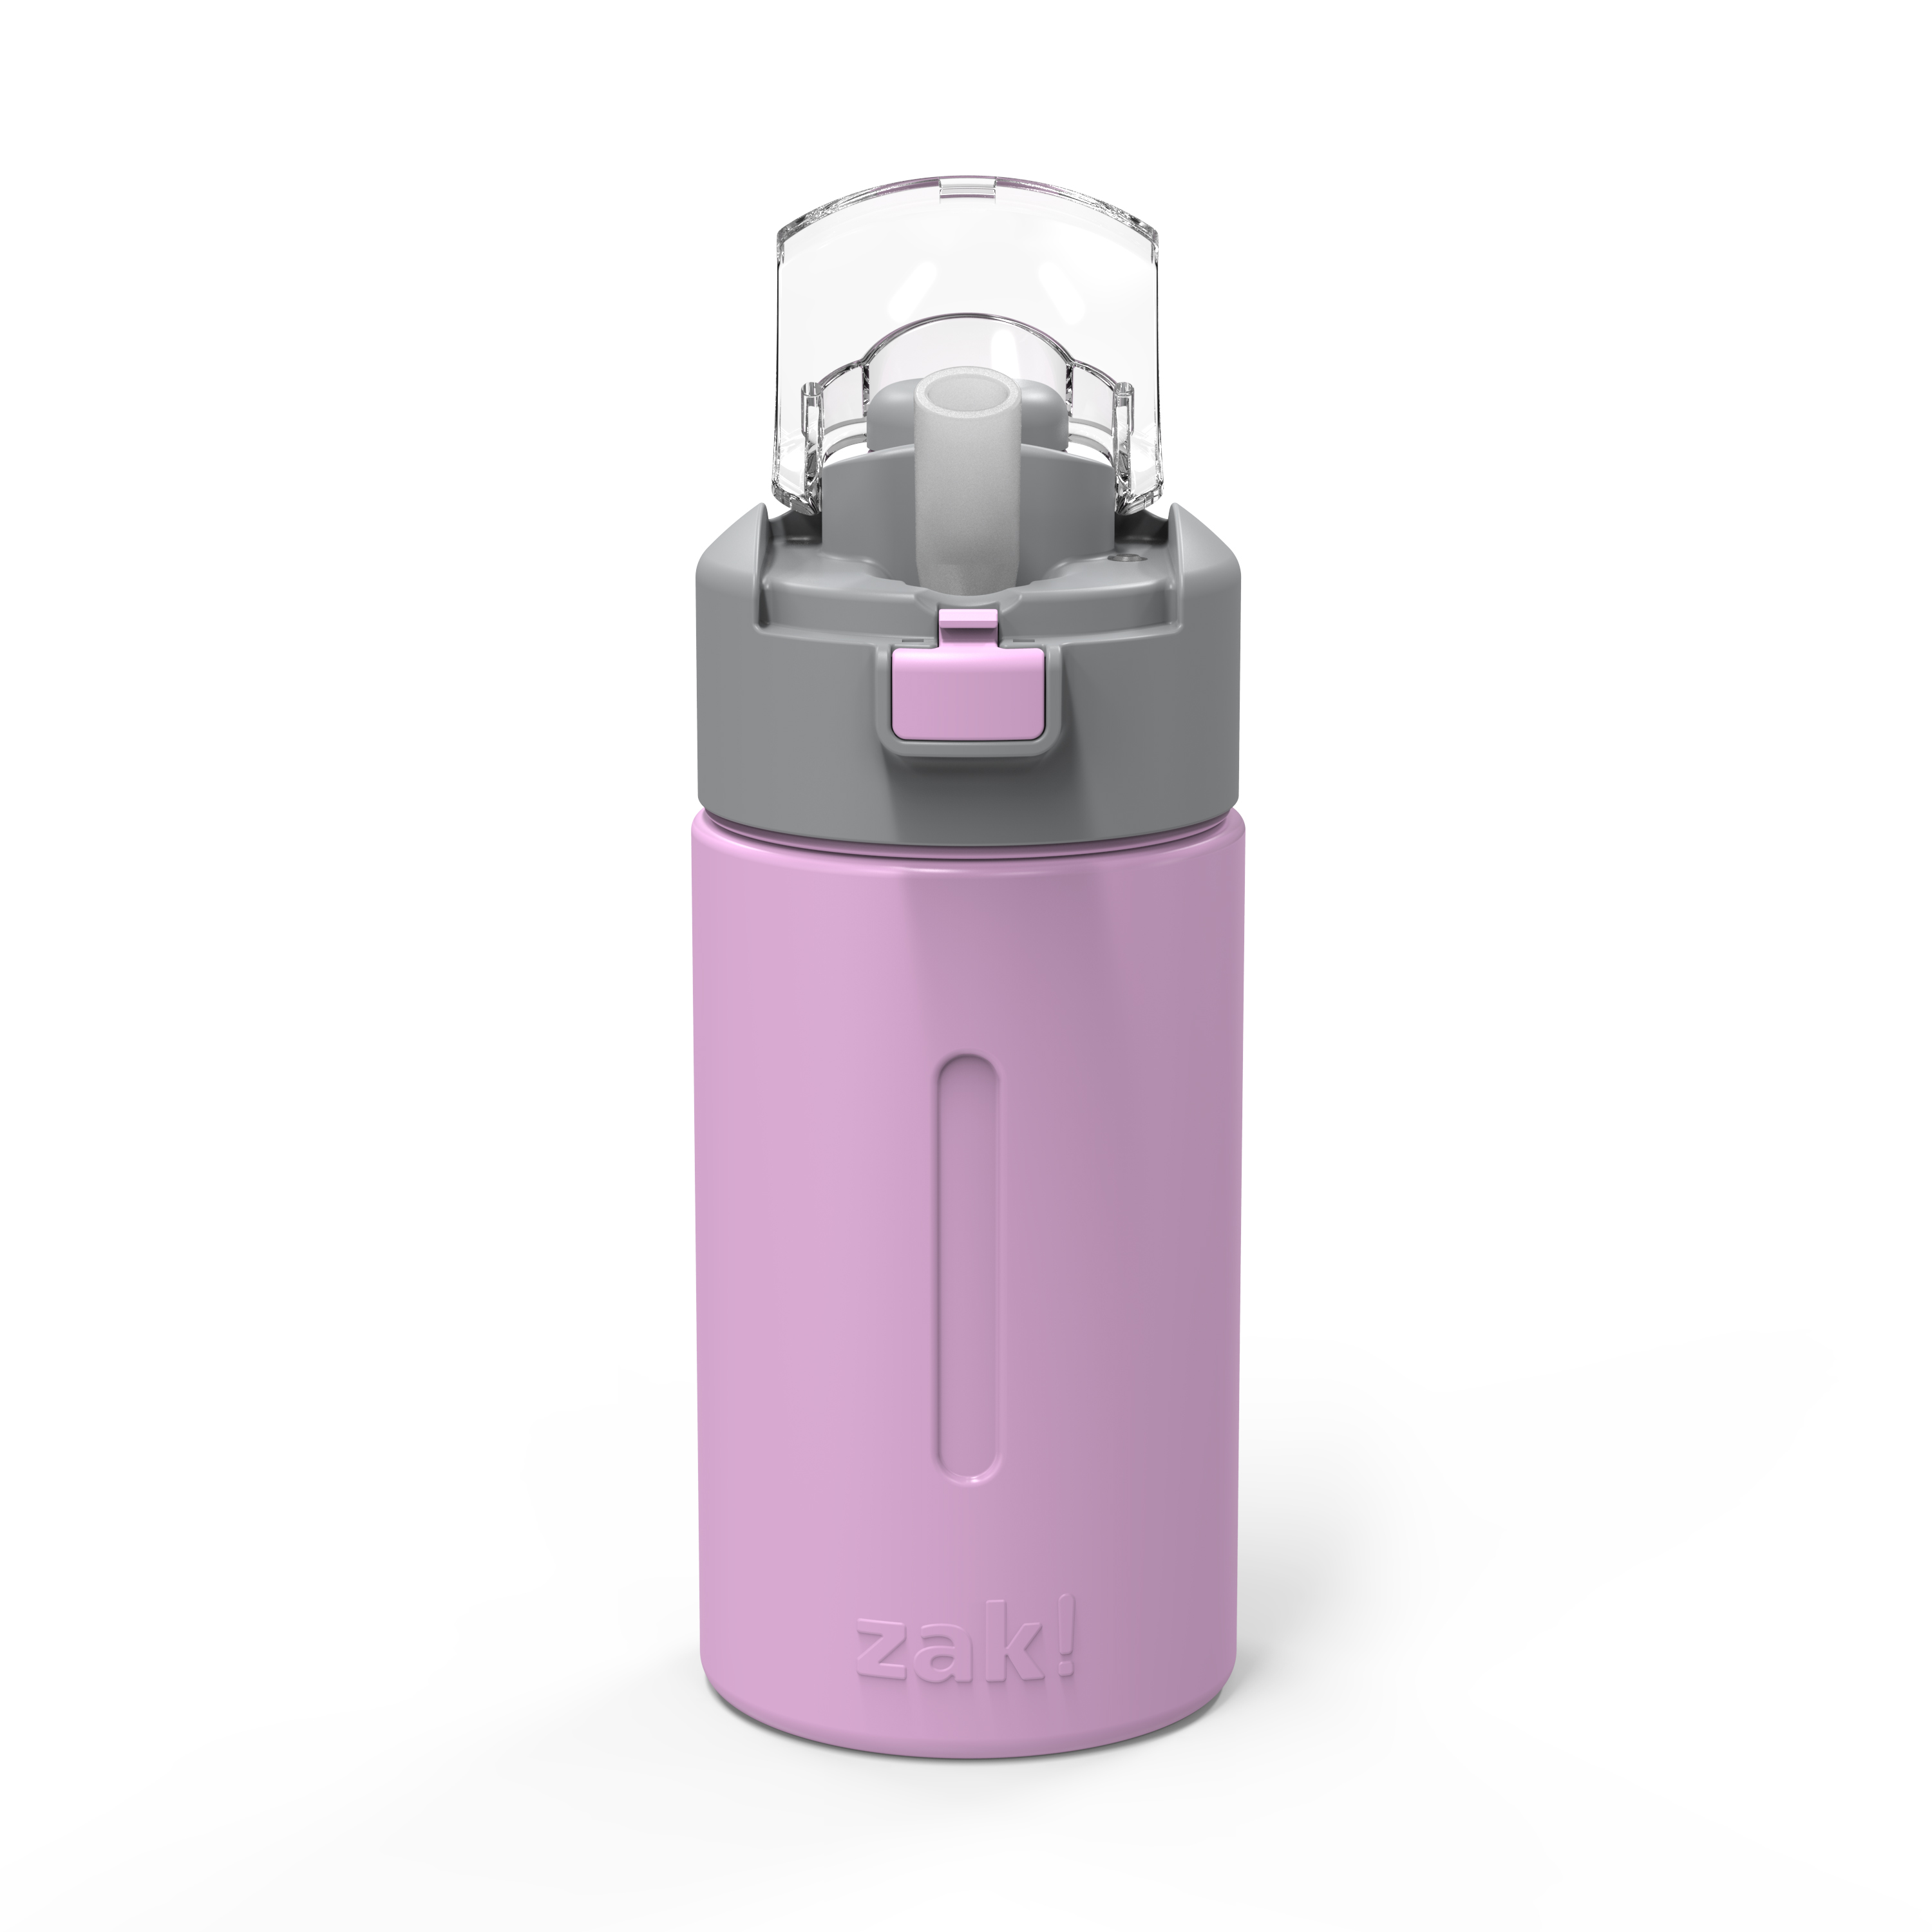 Genesis 12 ounce Vacuum Insulated Stainless Steel Tumbler, Lilac slideshow image 5